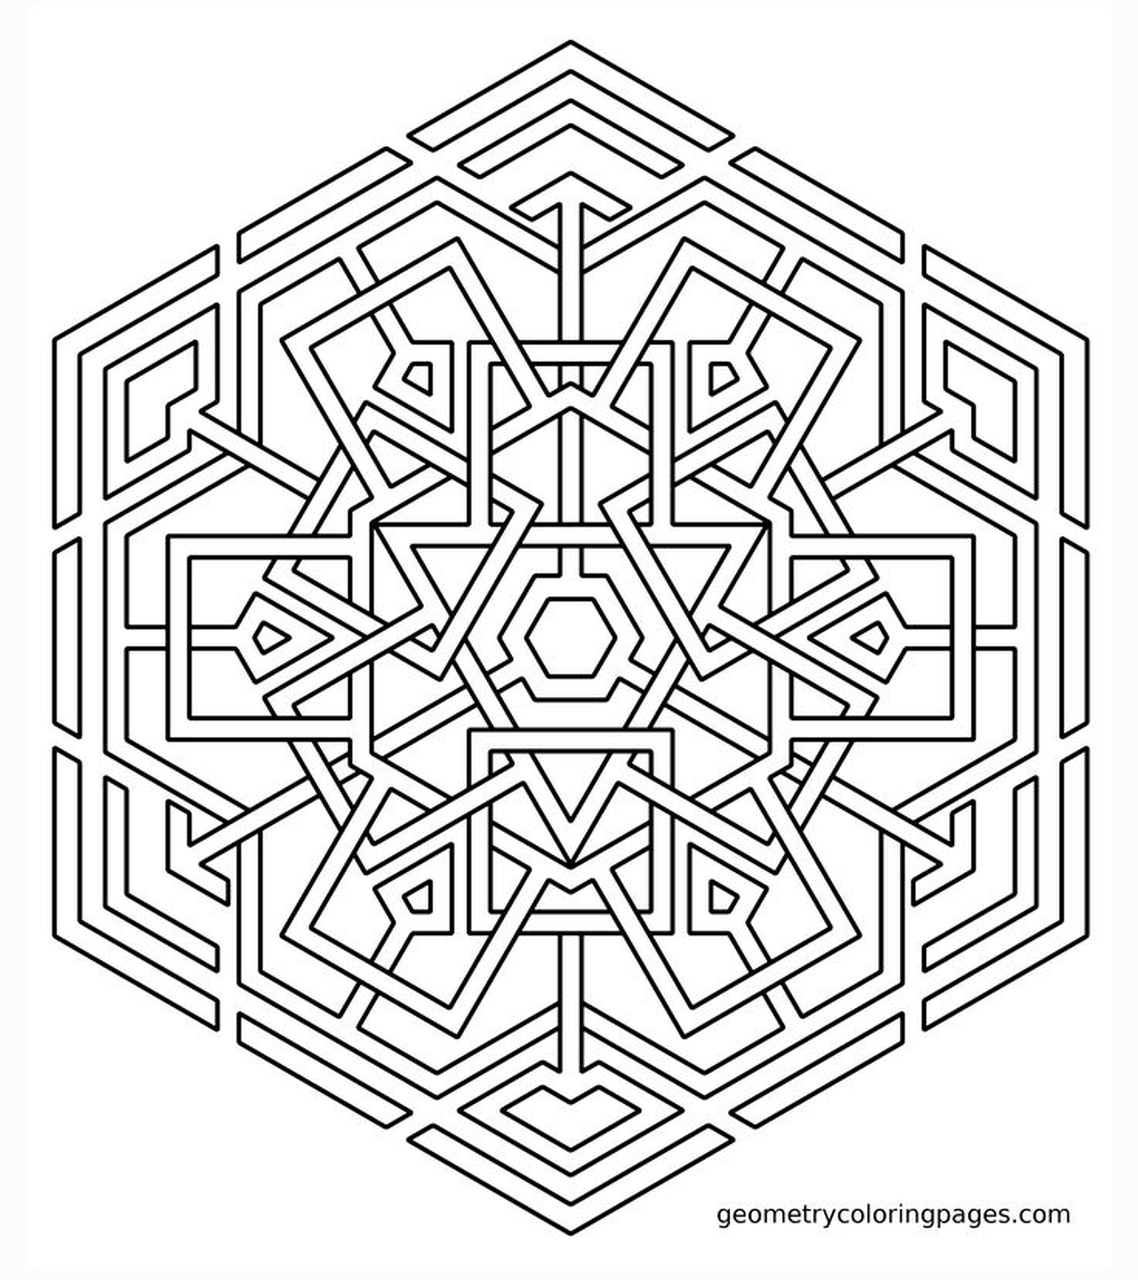 20 Free Printable Geometric Coloring Pages Everfreecoloring